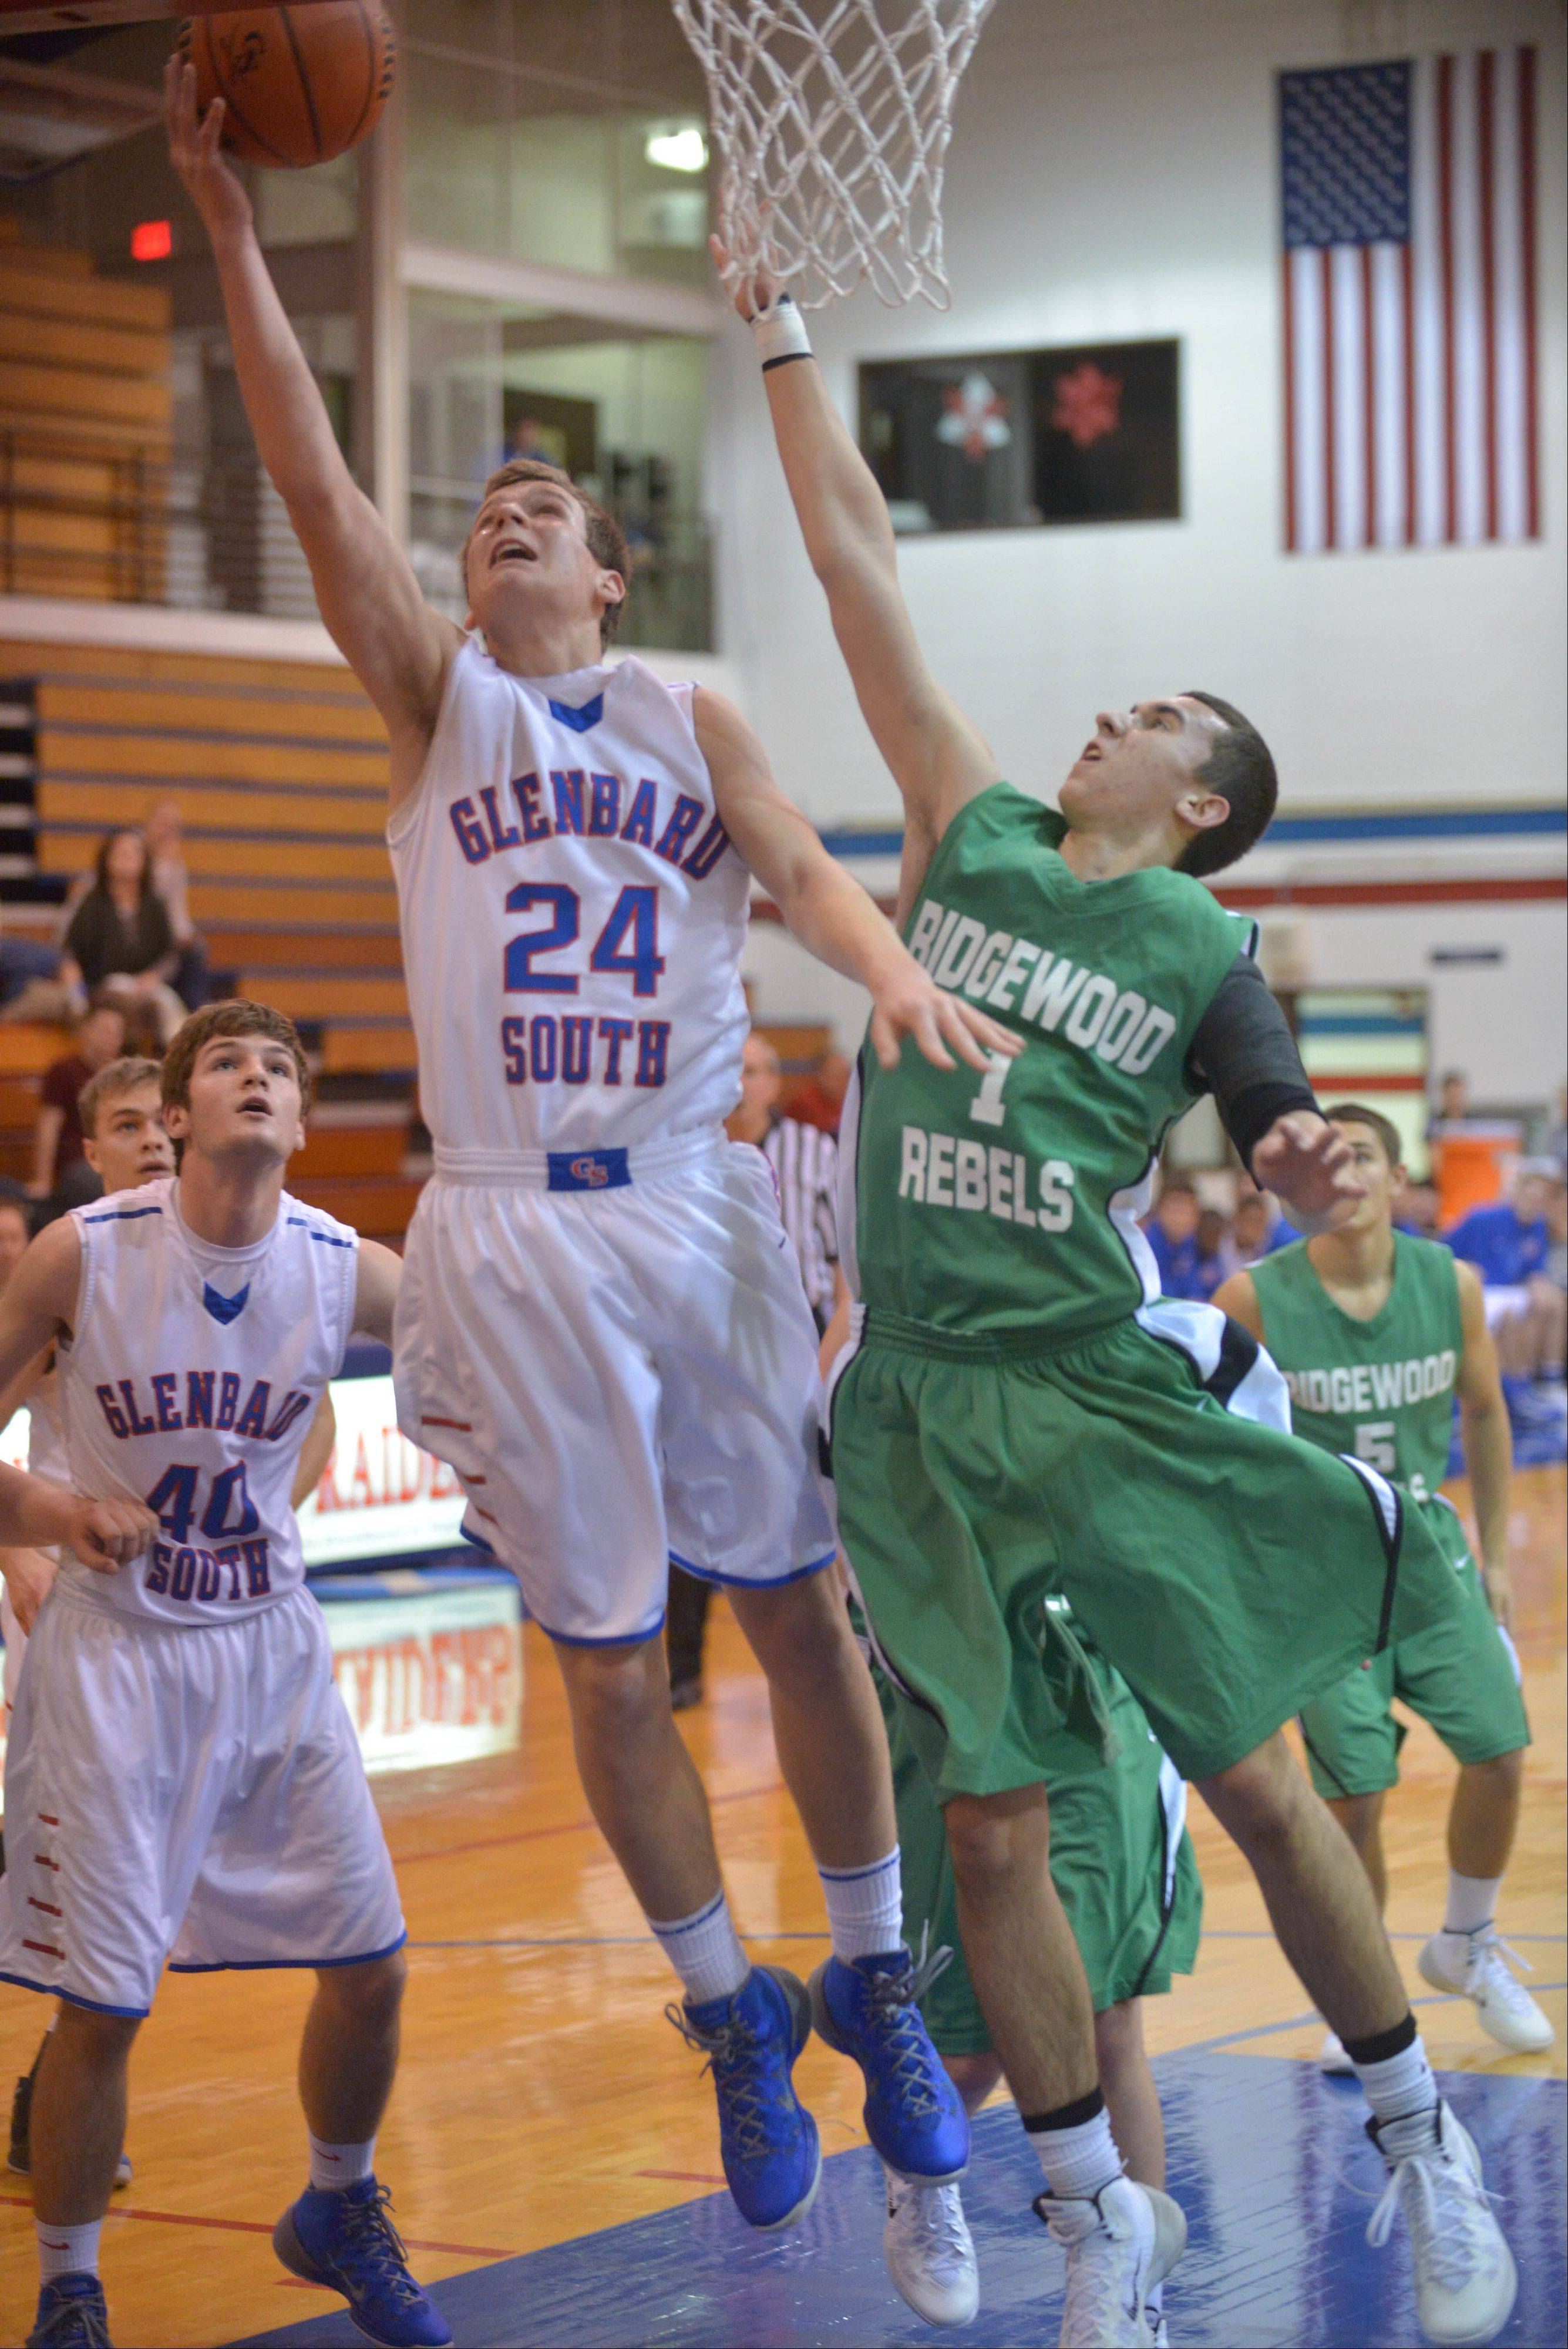 Alex Jeske of Glenbard South takes a shot over Brian Burack of Ridgewood.